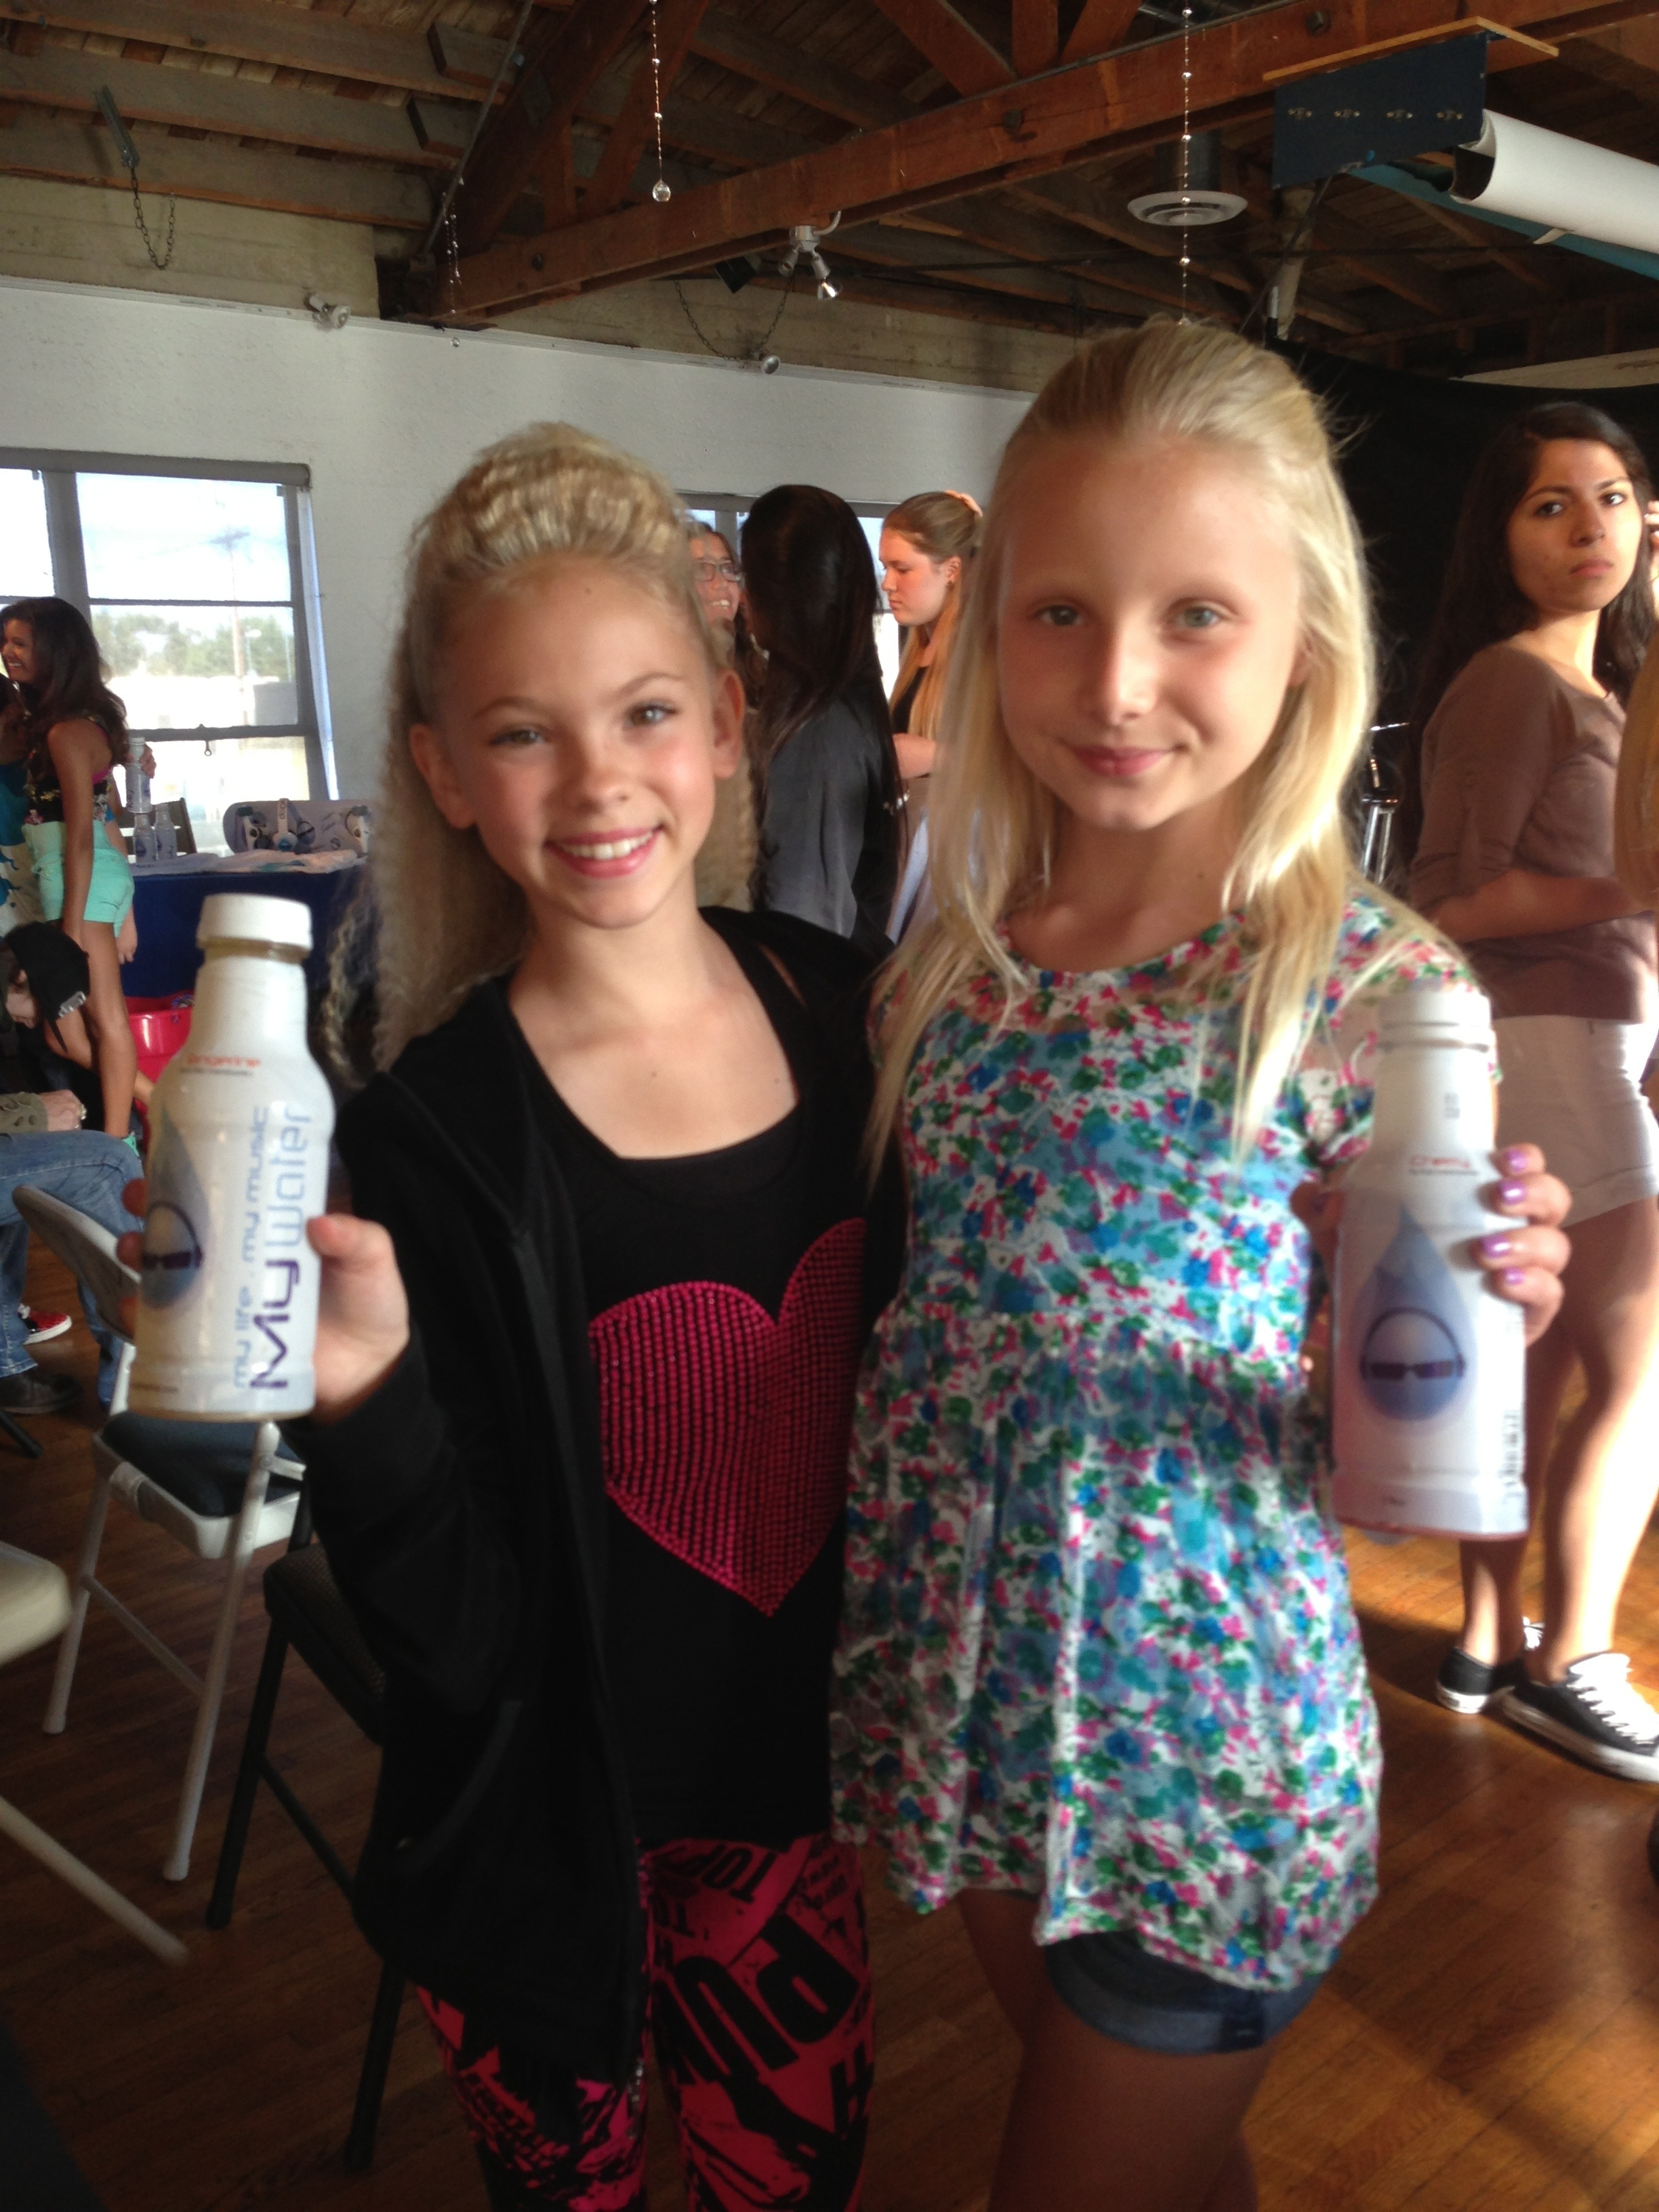 Carson Lueders and Jordyn Jones Perform a Duet at Inside the Drop ...